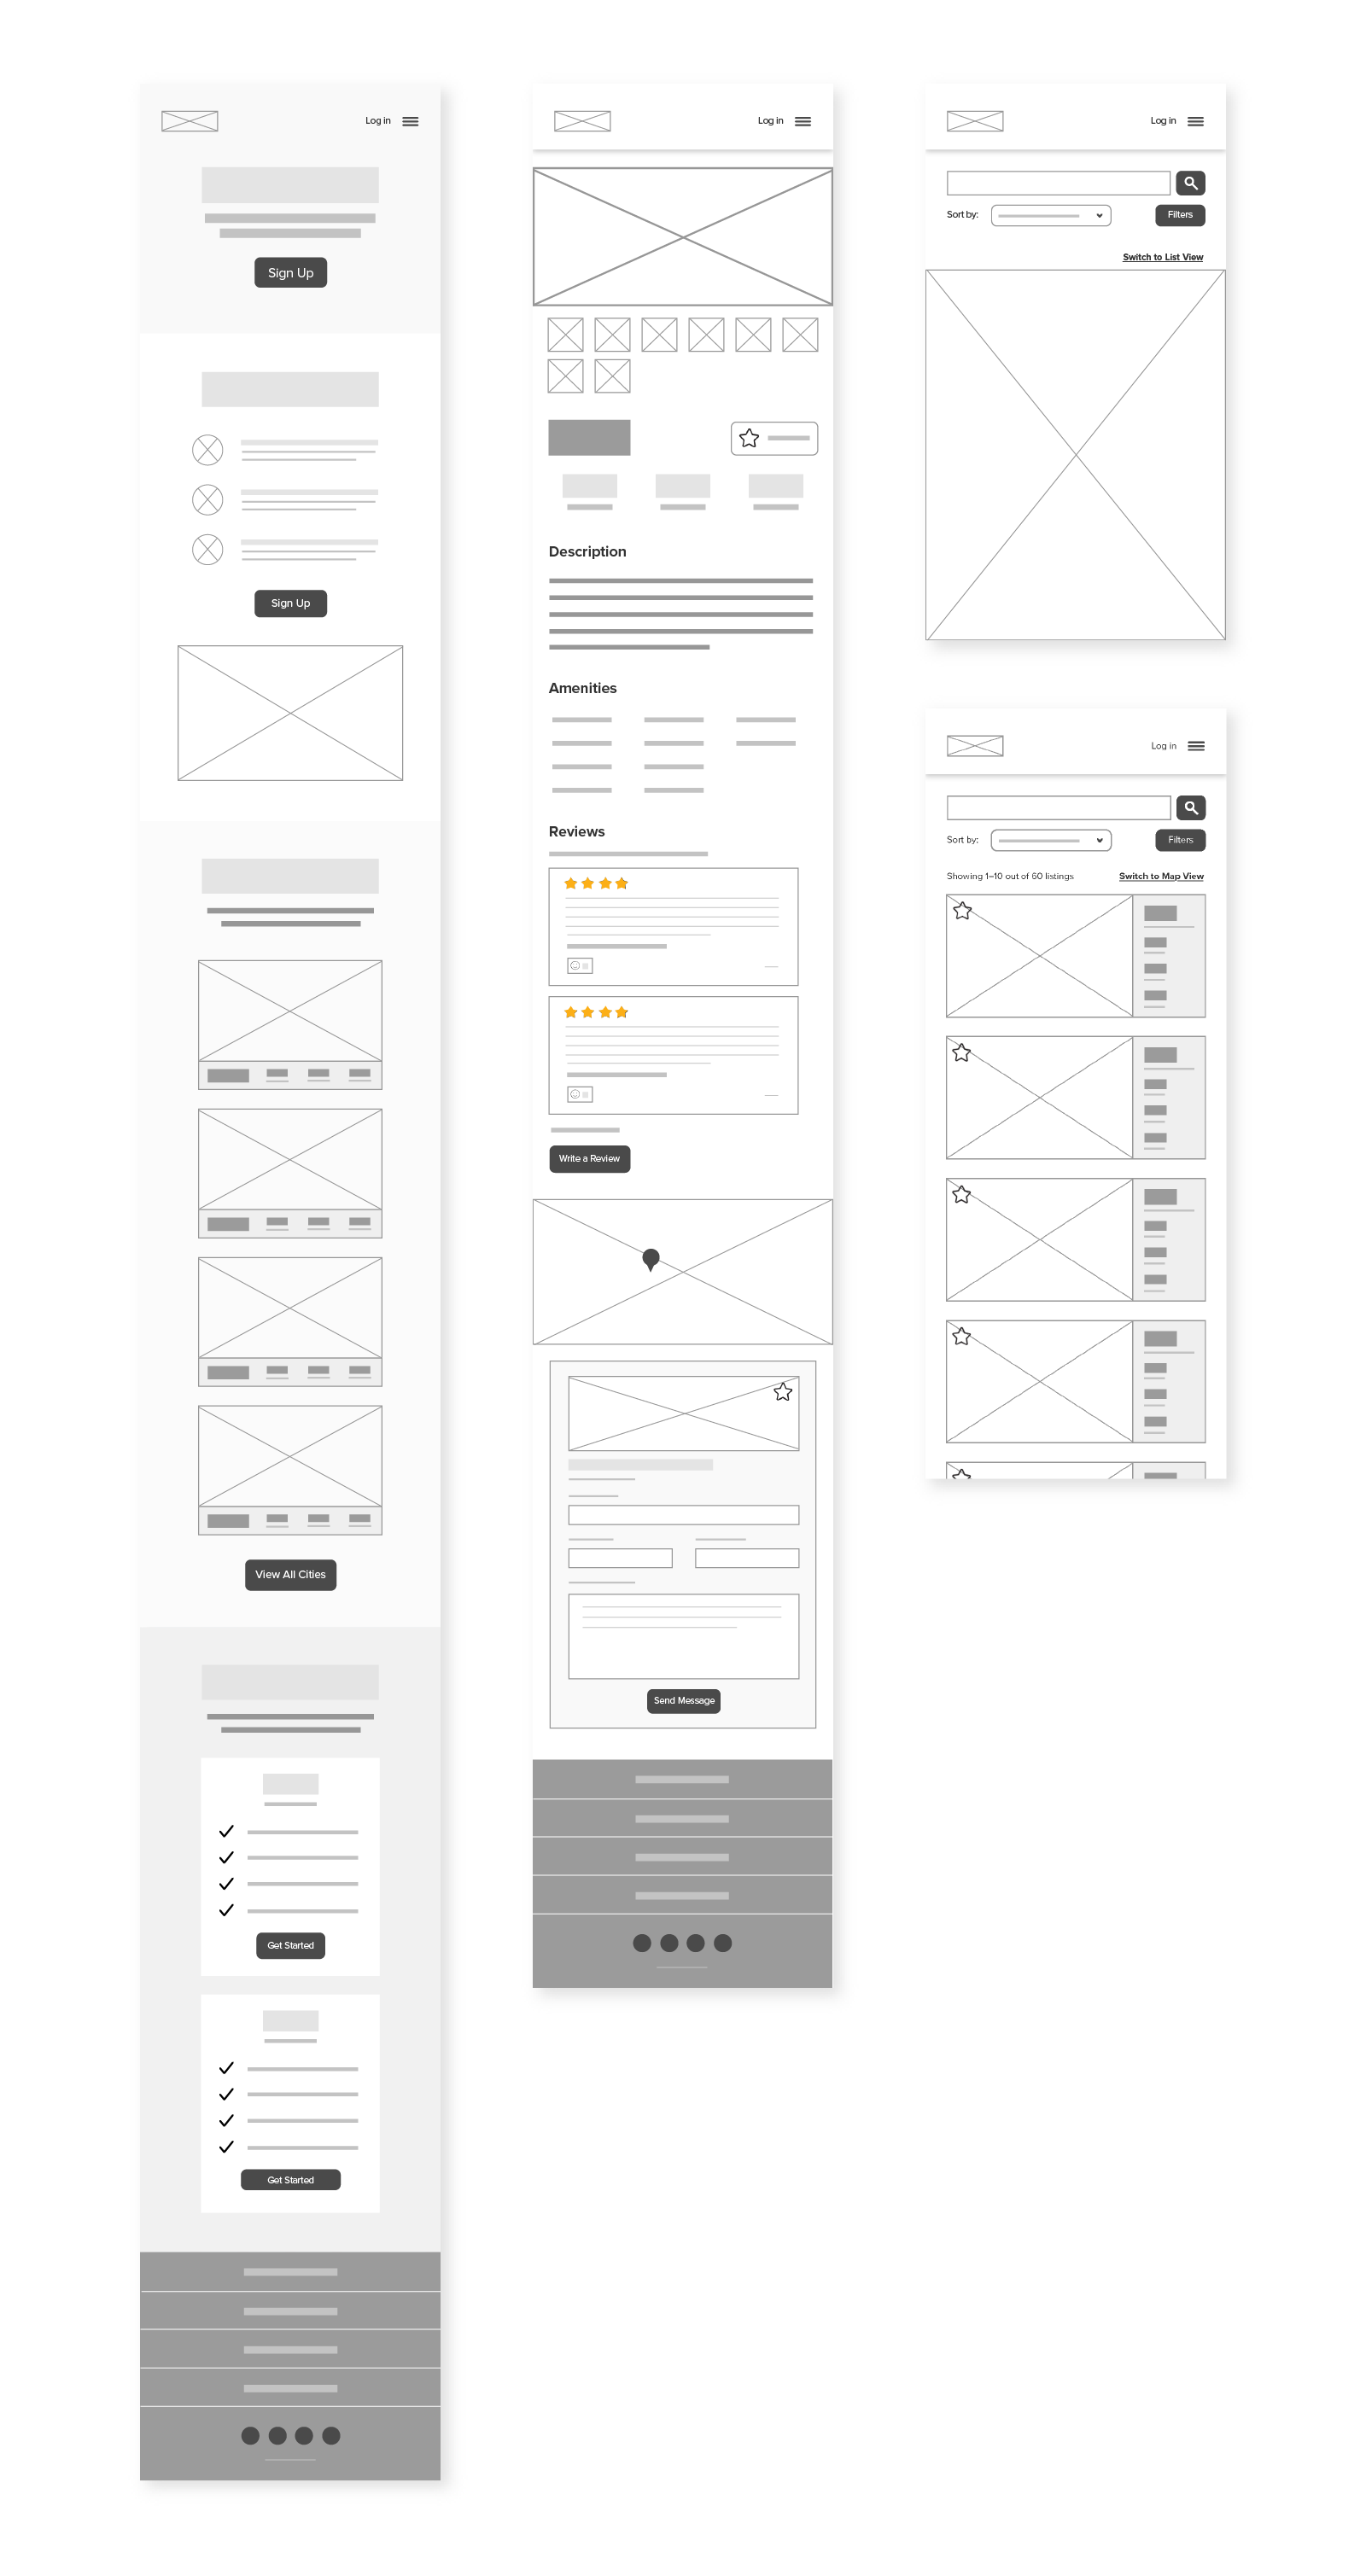 Rent-tastic Mobile Wireframes@2x.png